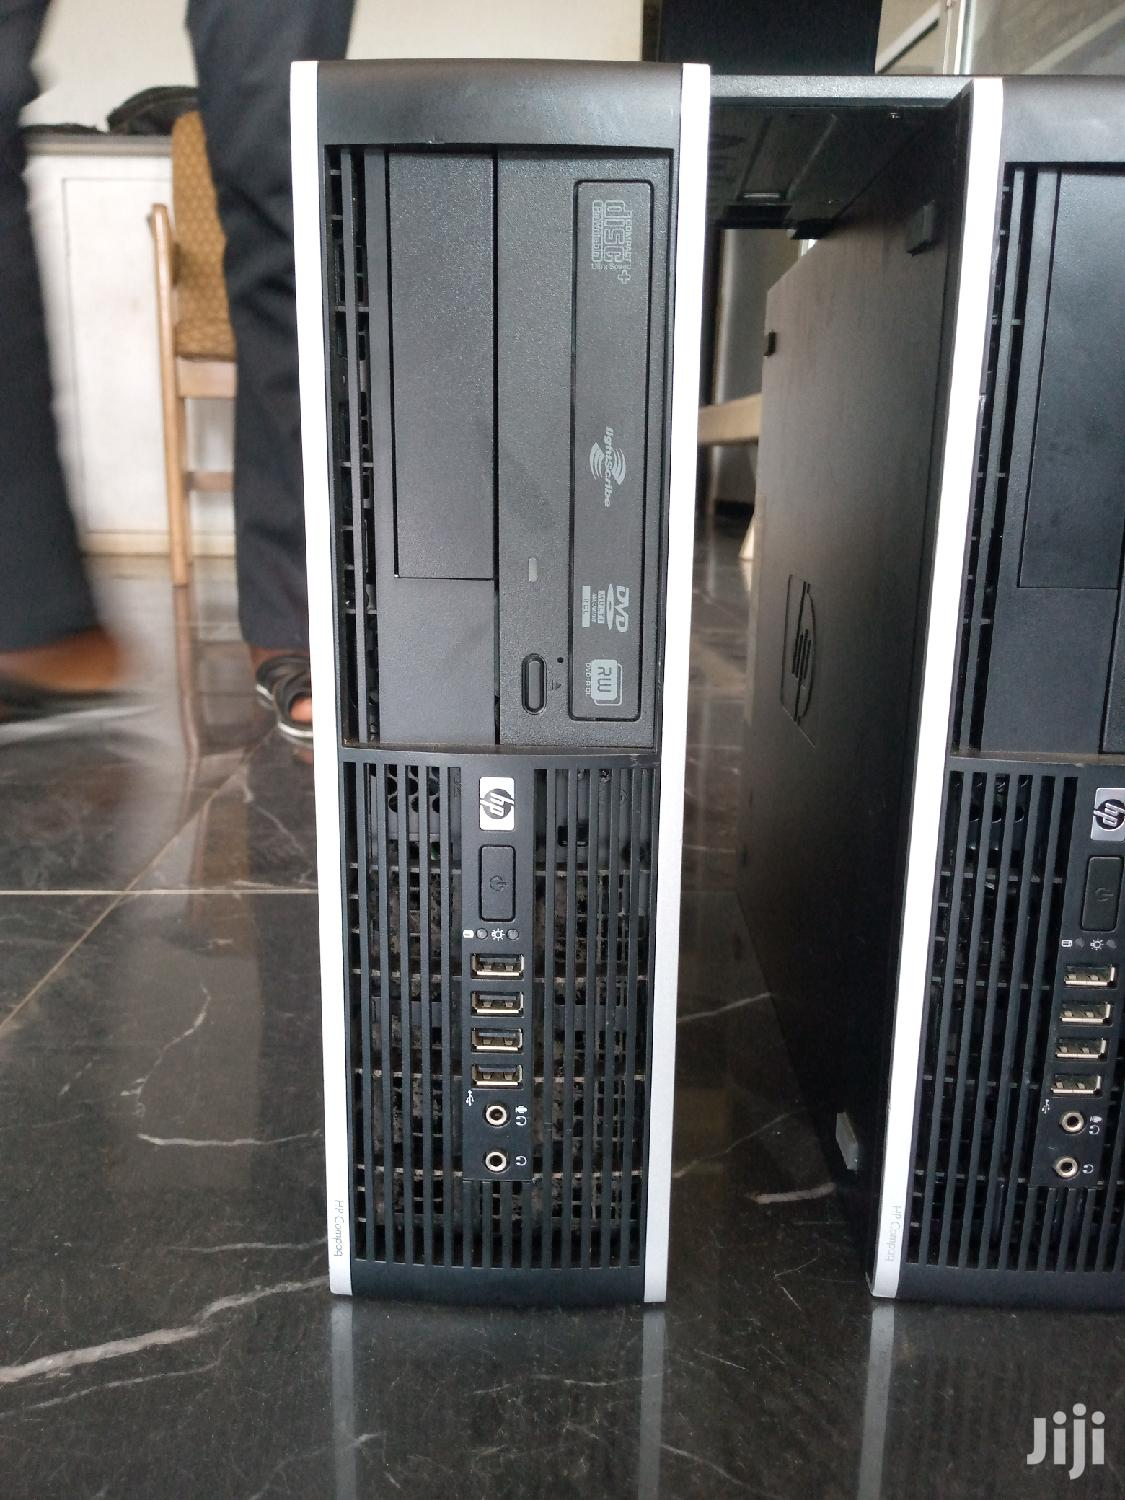 Desktop Computer HP EliteDesk 800 4GB Intel Core 2 Duo HDD 160GB | Laptops & Computers for sale in Ga West Municipal, Greater Accra, Ghana